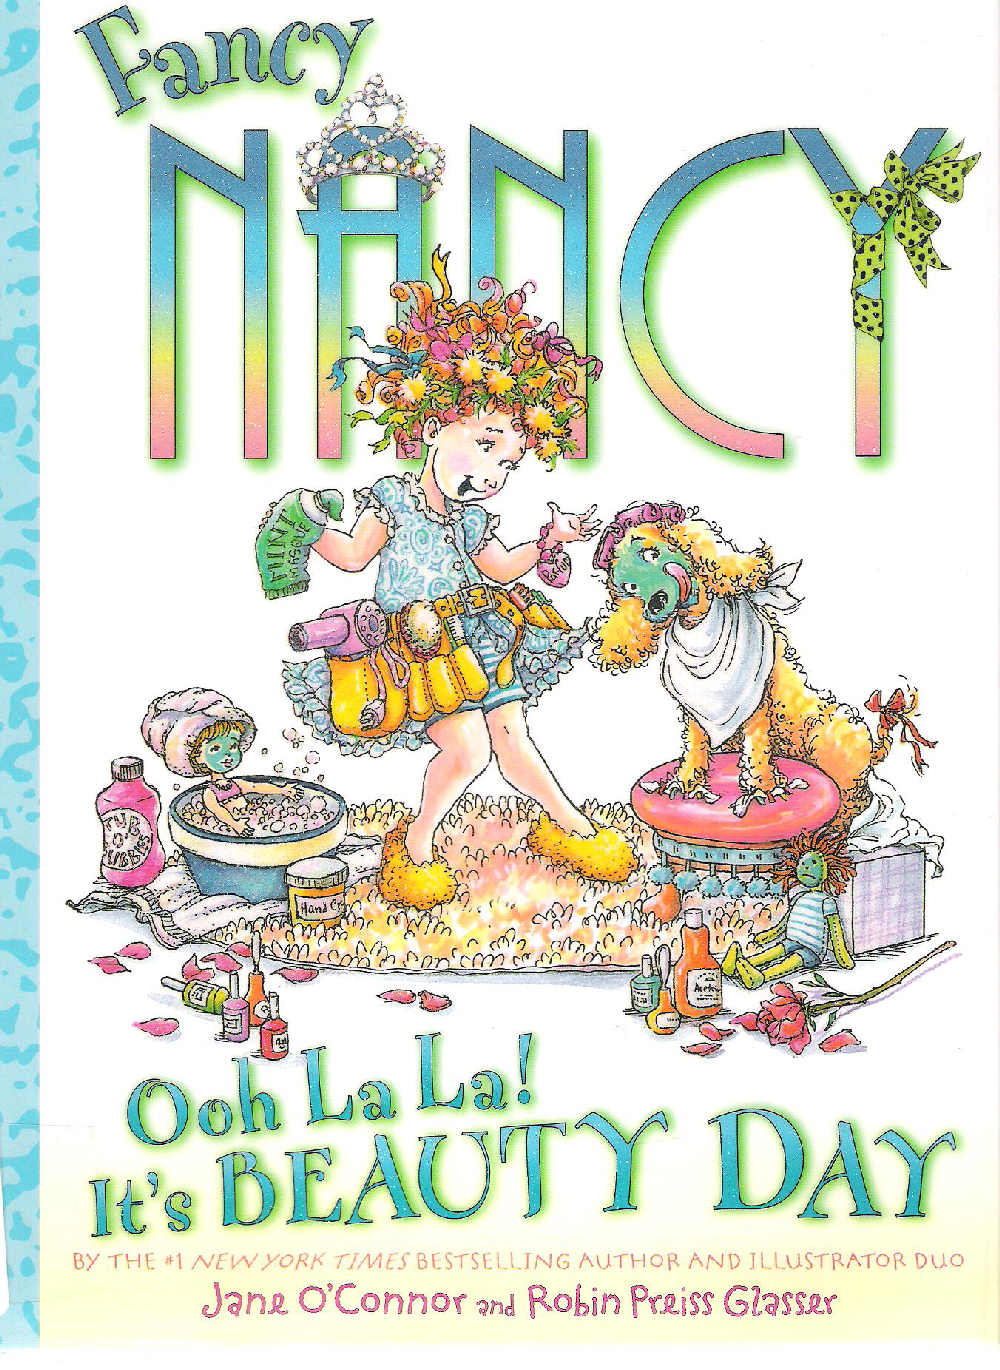 Fancy Nancy: Nancy Clancy's Ultimate Chapter Book Quartet: Books 1 Through 4 by